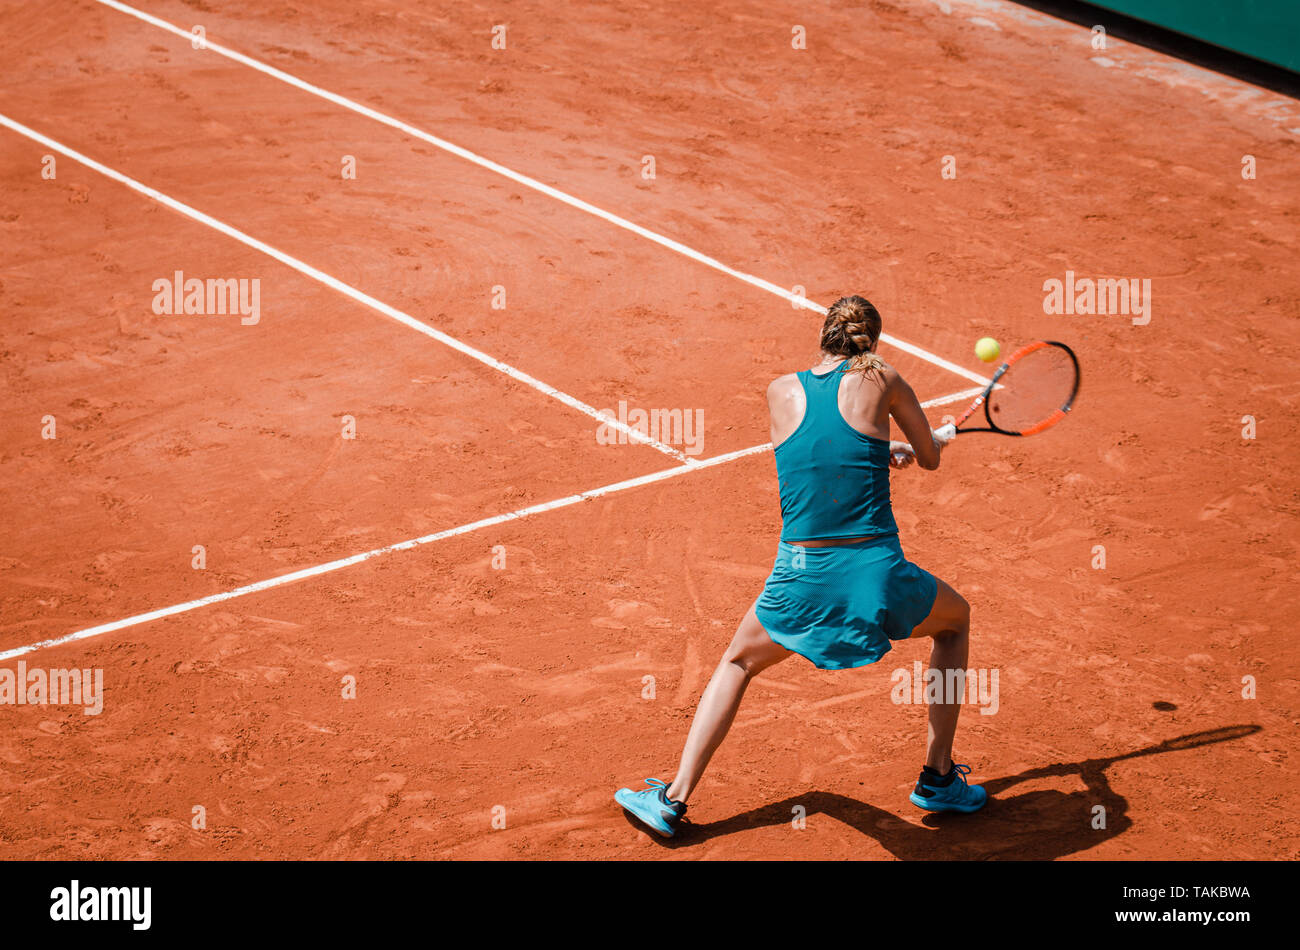 Back view  of a woman playing backhand in tennis outdoor competition game, running, professional - Stock Image